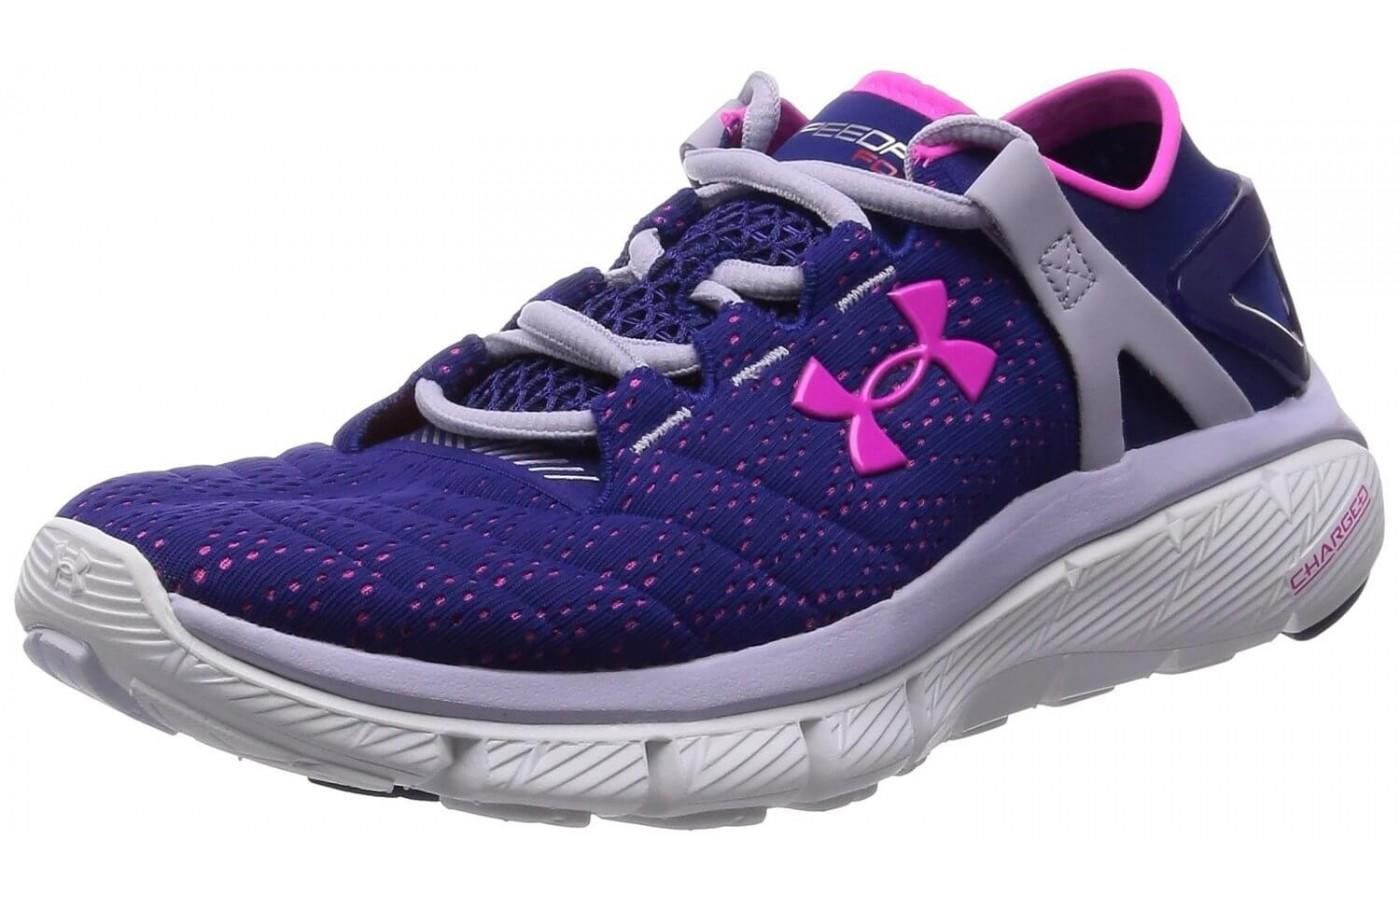 Under Armour SpeedForm Fortis - Buy or Not in Mar 2019  449497f7f